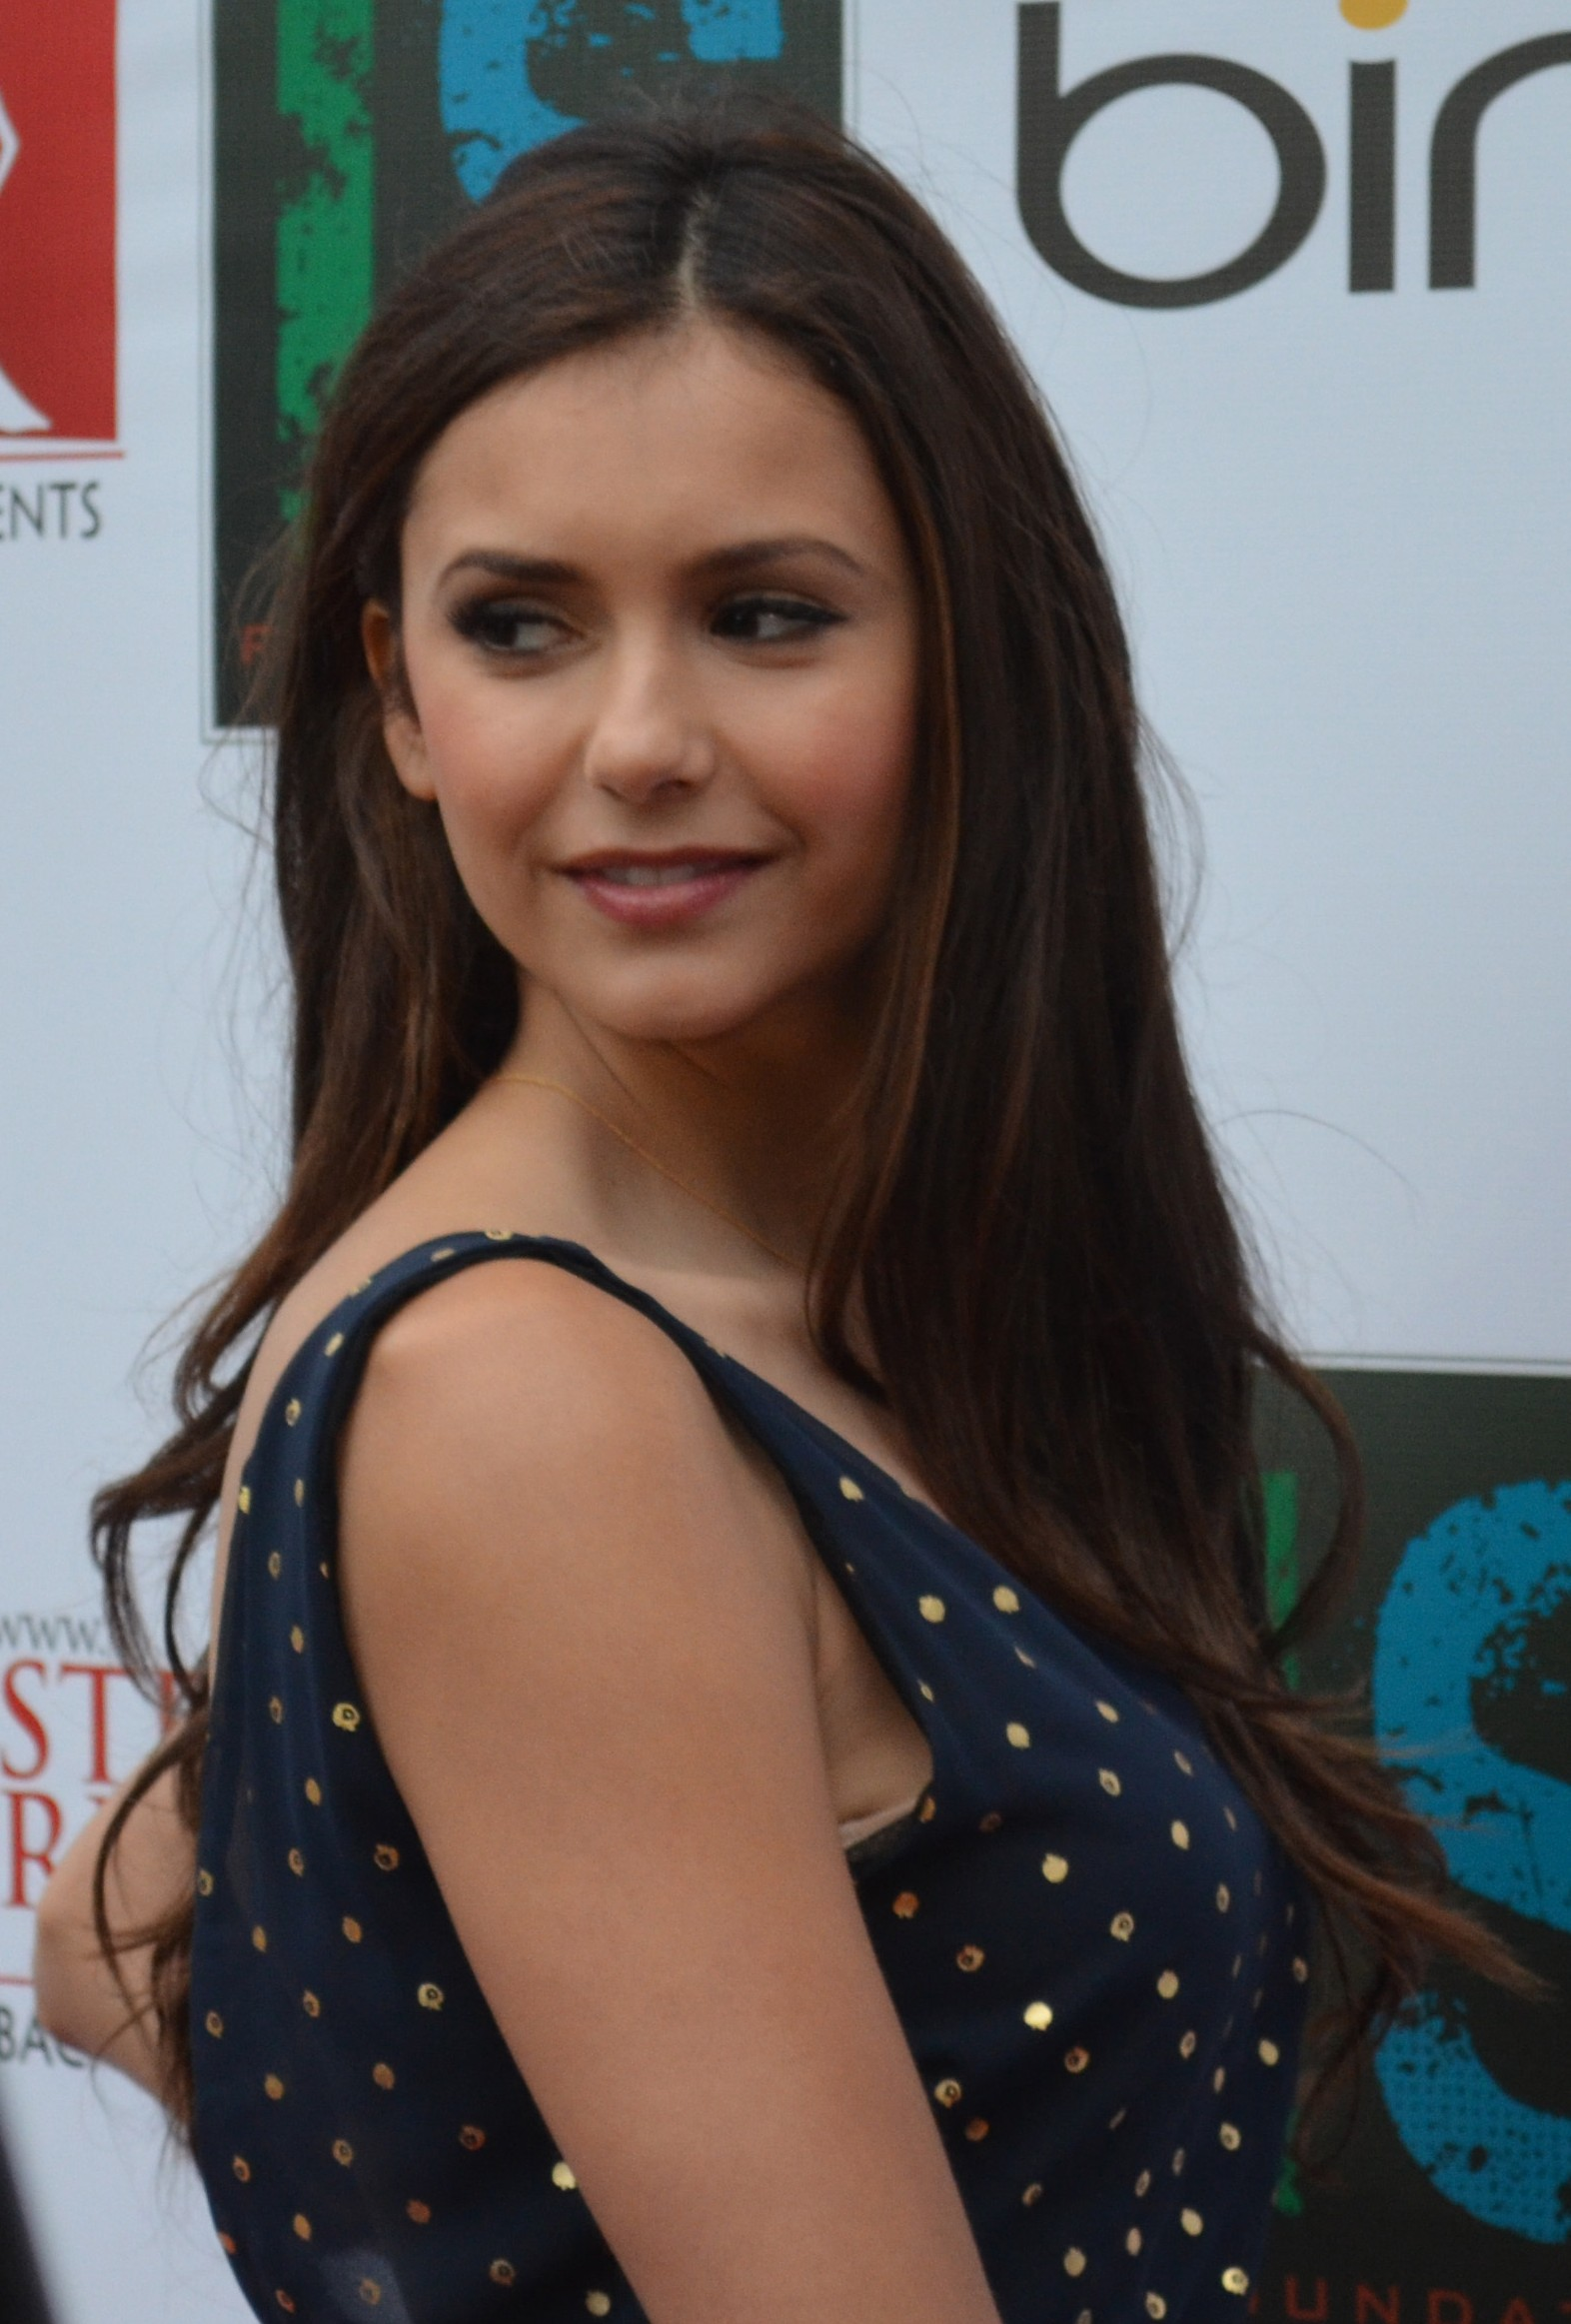 File:Nina Dobrev ISF April 2012.jpg - Wikimedia Commons